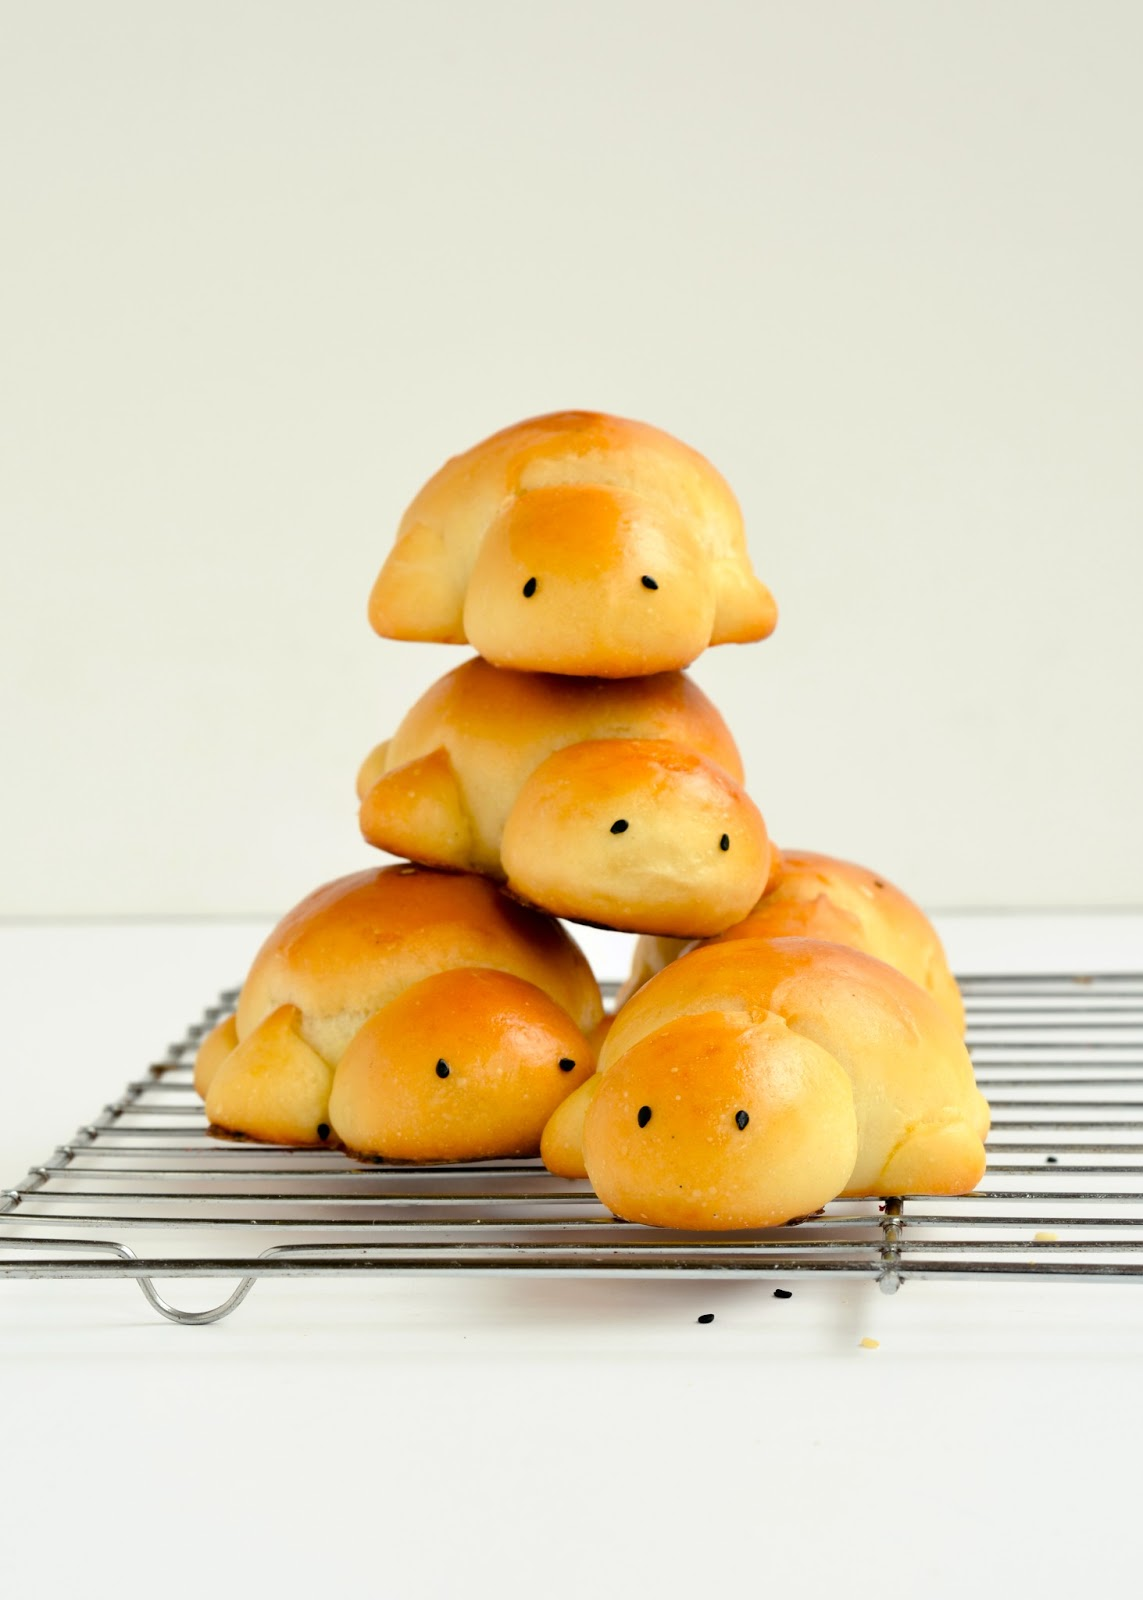 Scary Lunch hall foods/-/ Sweet milk turtle bread | The ...